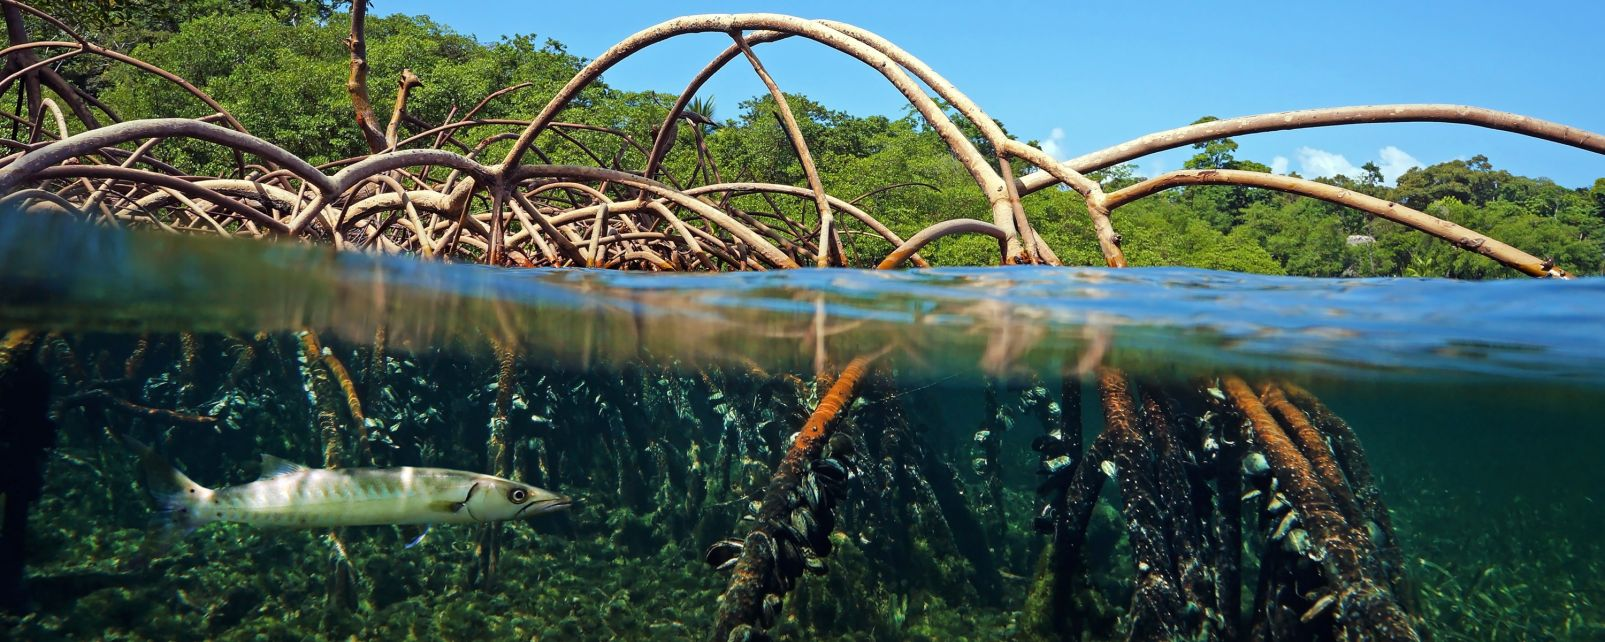 The mangrove, The Mangrove, The fauna and flora, Guadelupe